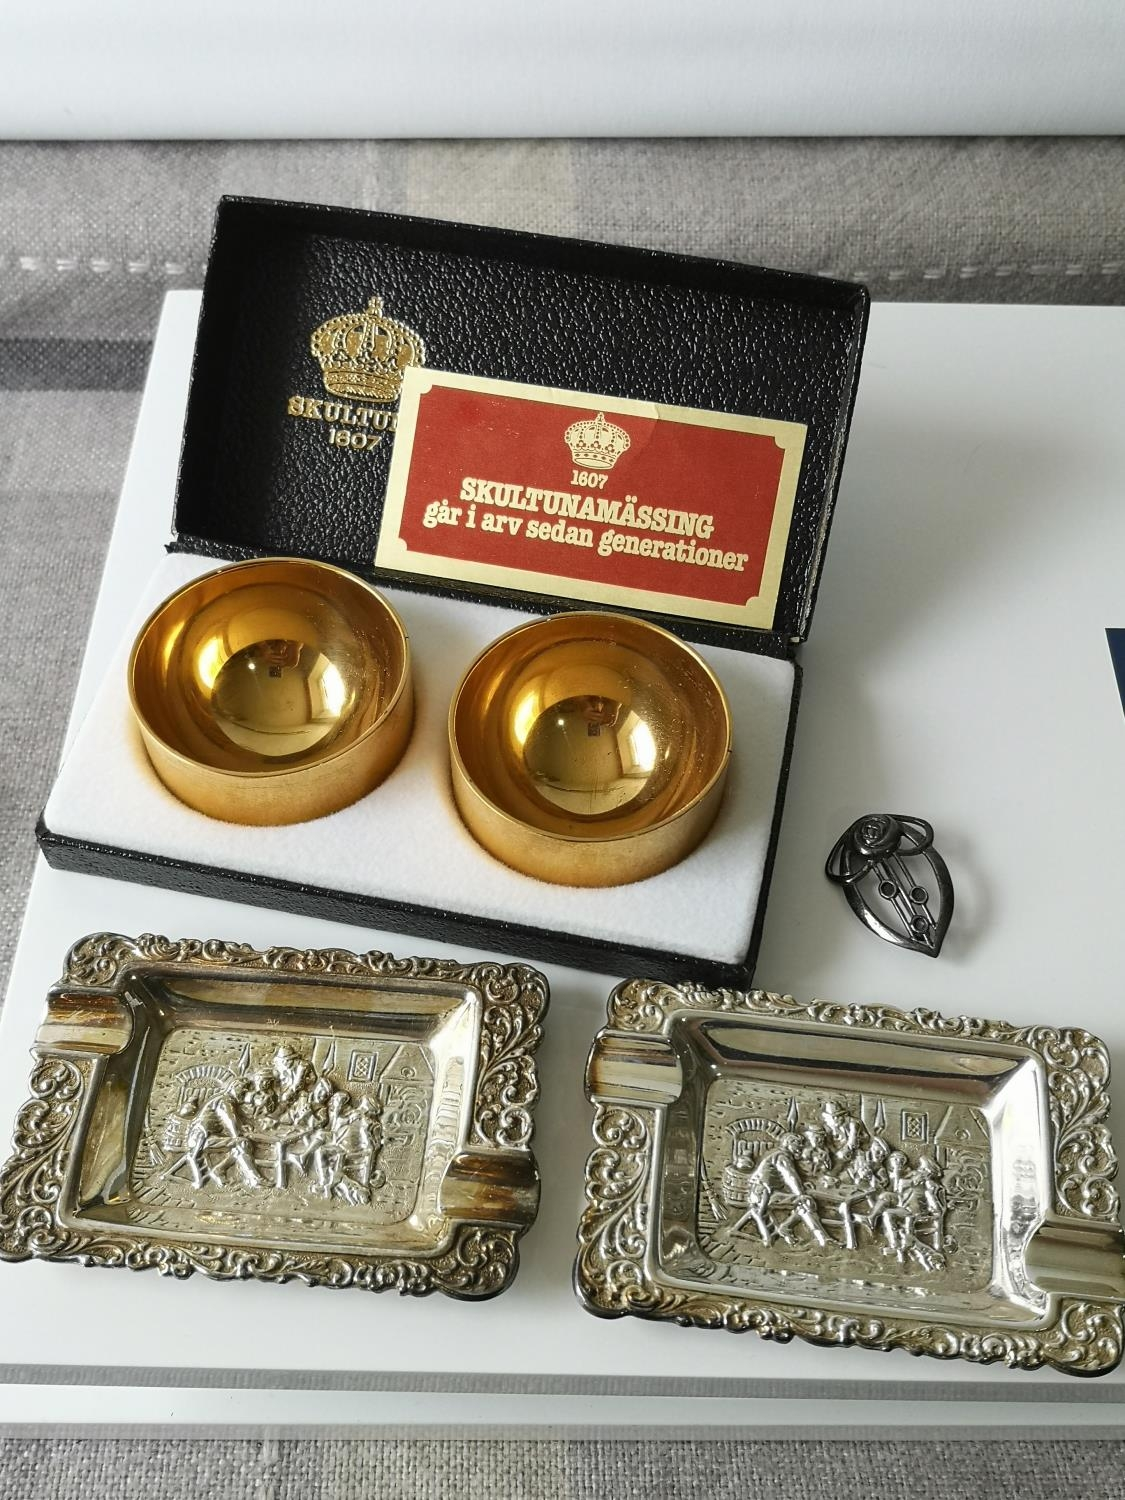 A Pair of boxed gold plated Swedish Skultuna cruet pots together with two ornate silver plated ash